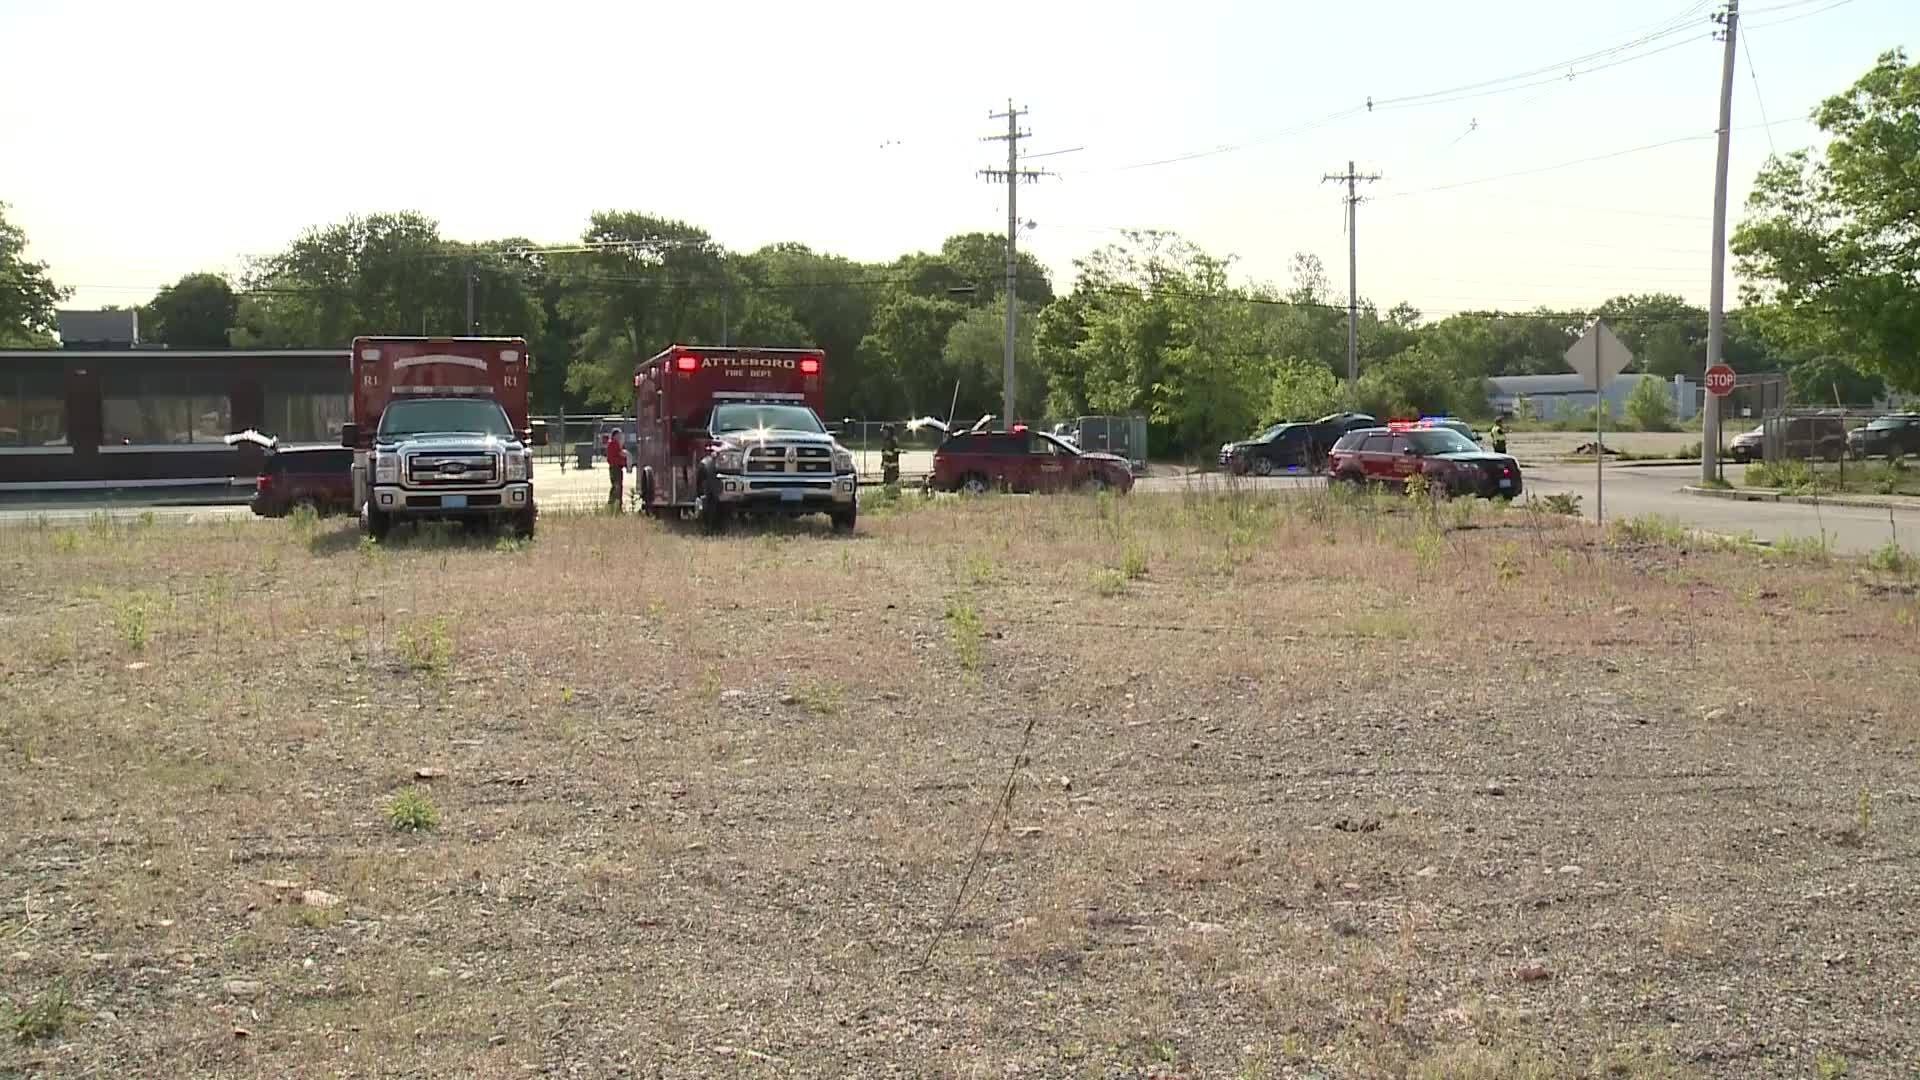 Video Now: Crews respond to hazmat situation in Attleboro